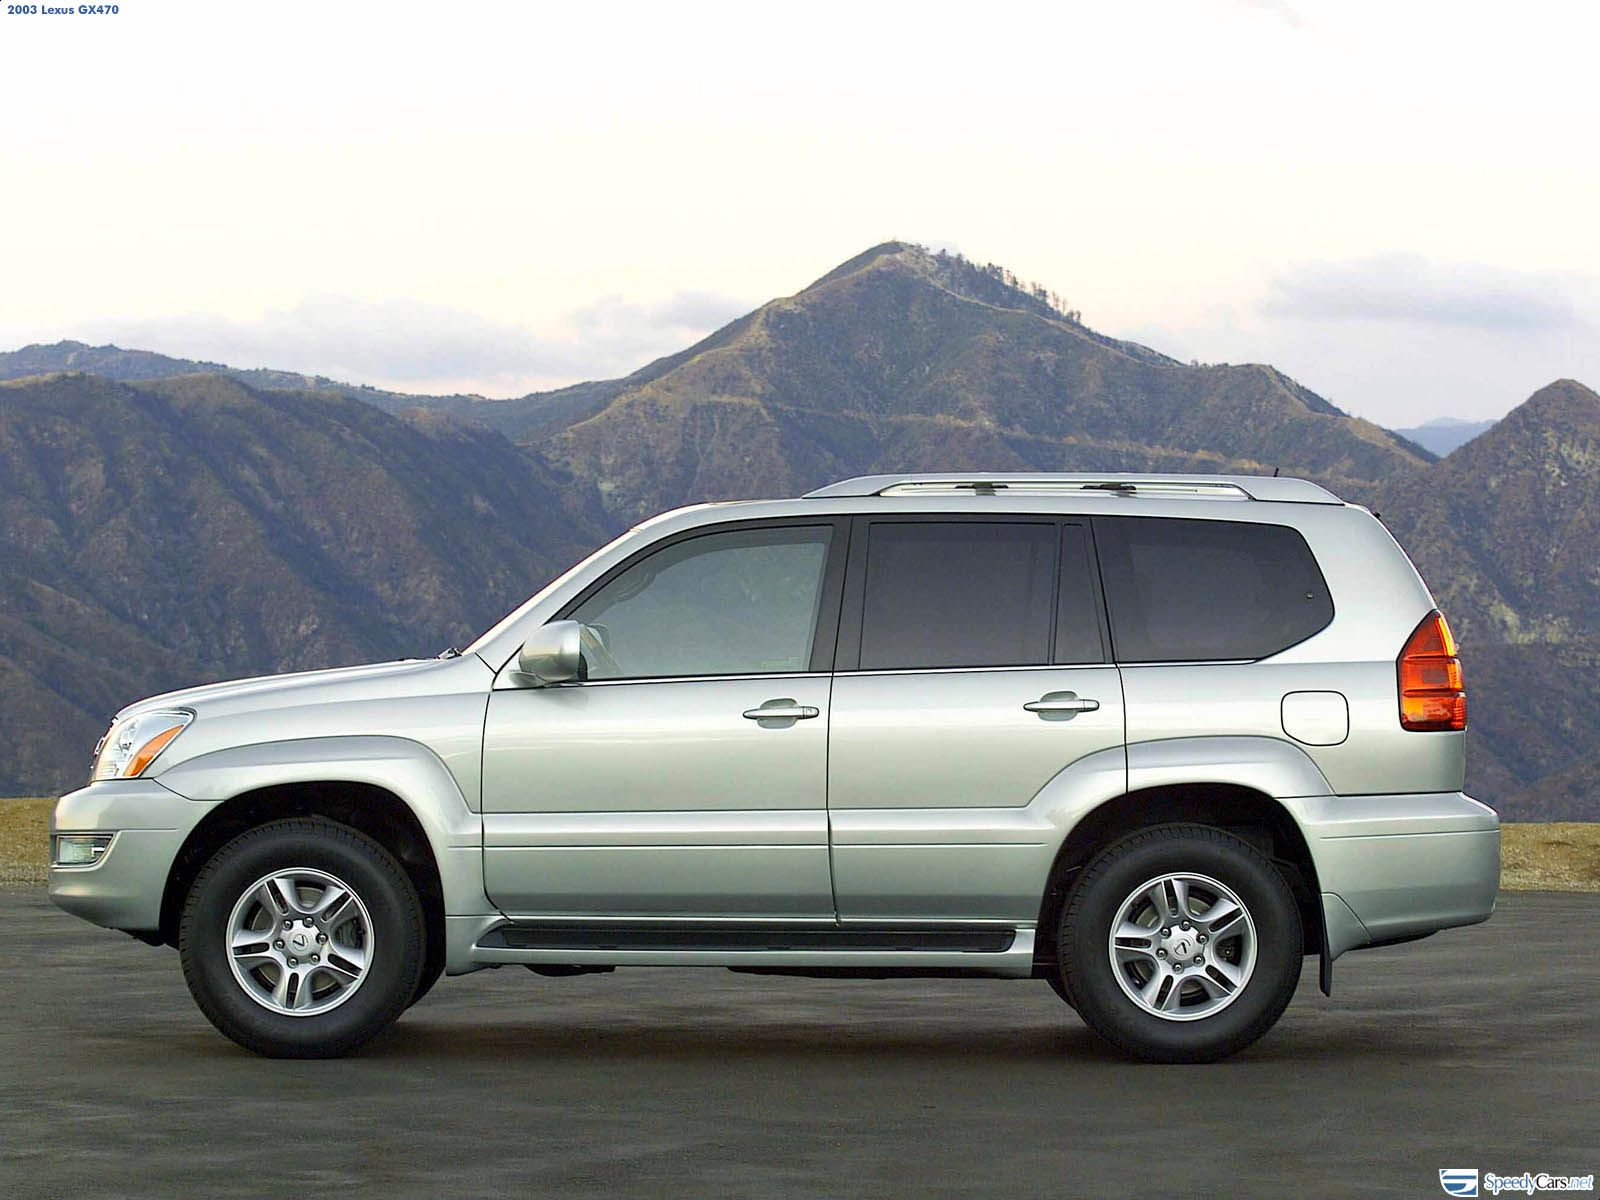 Lexus GX 470 photo 3031